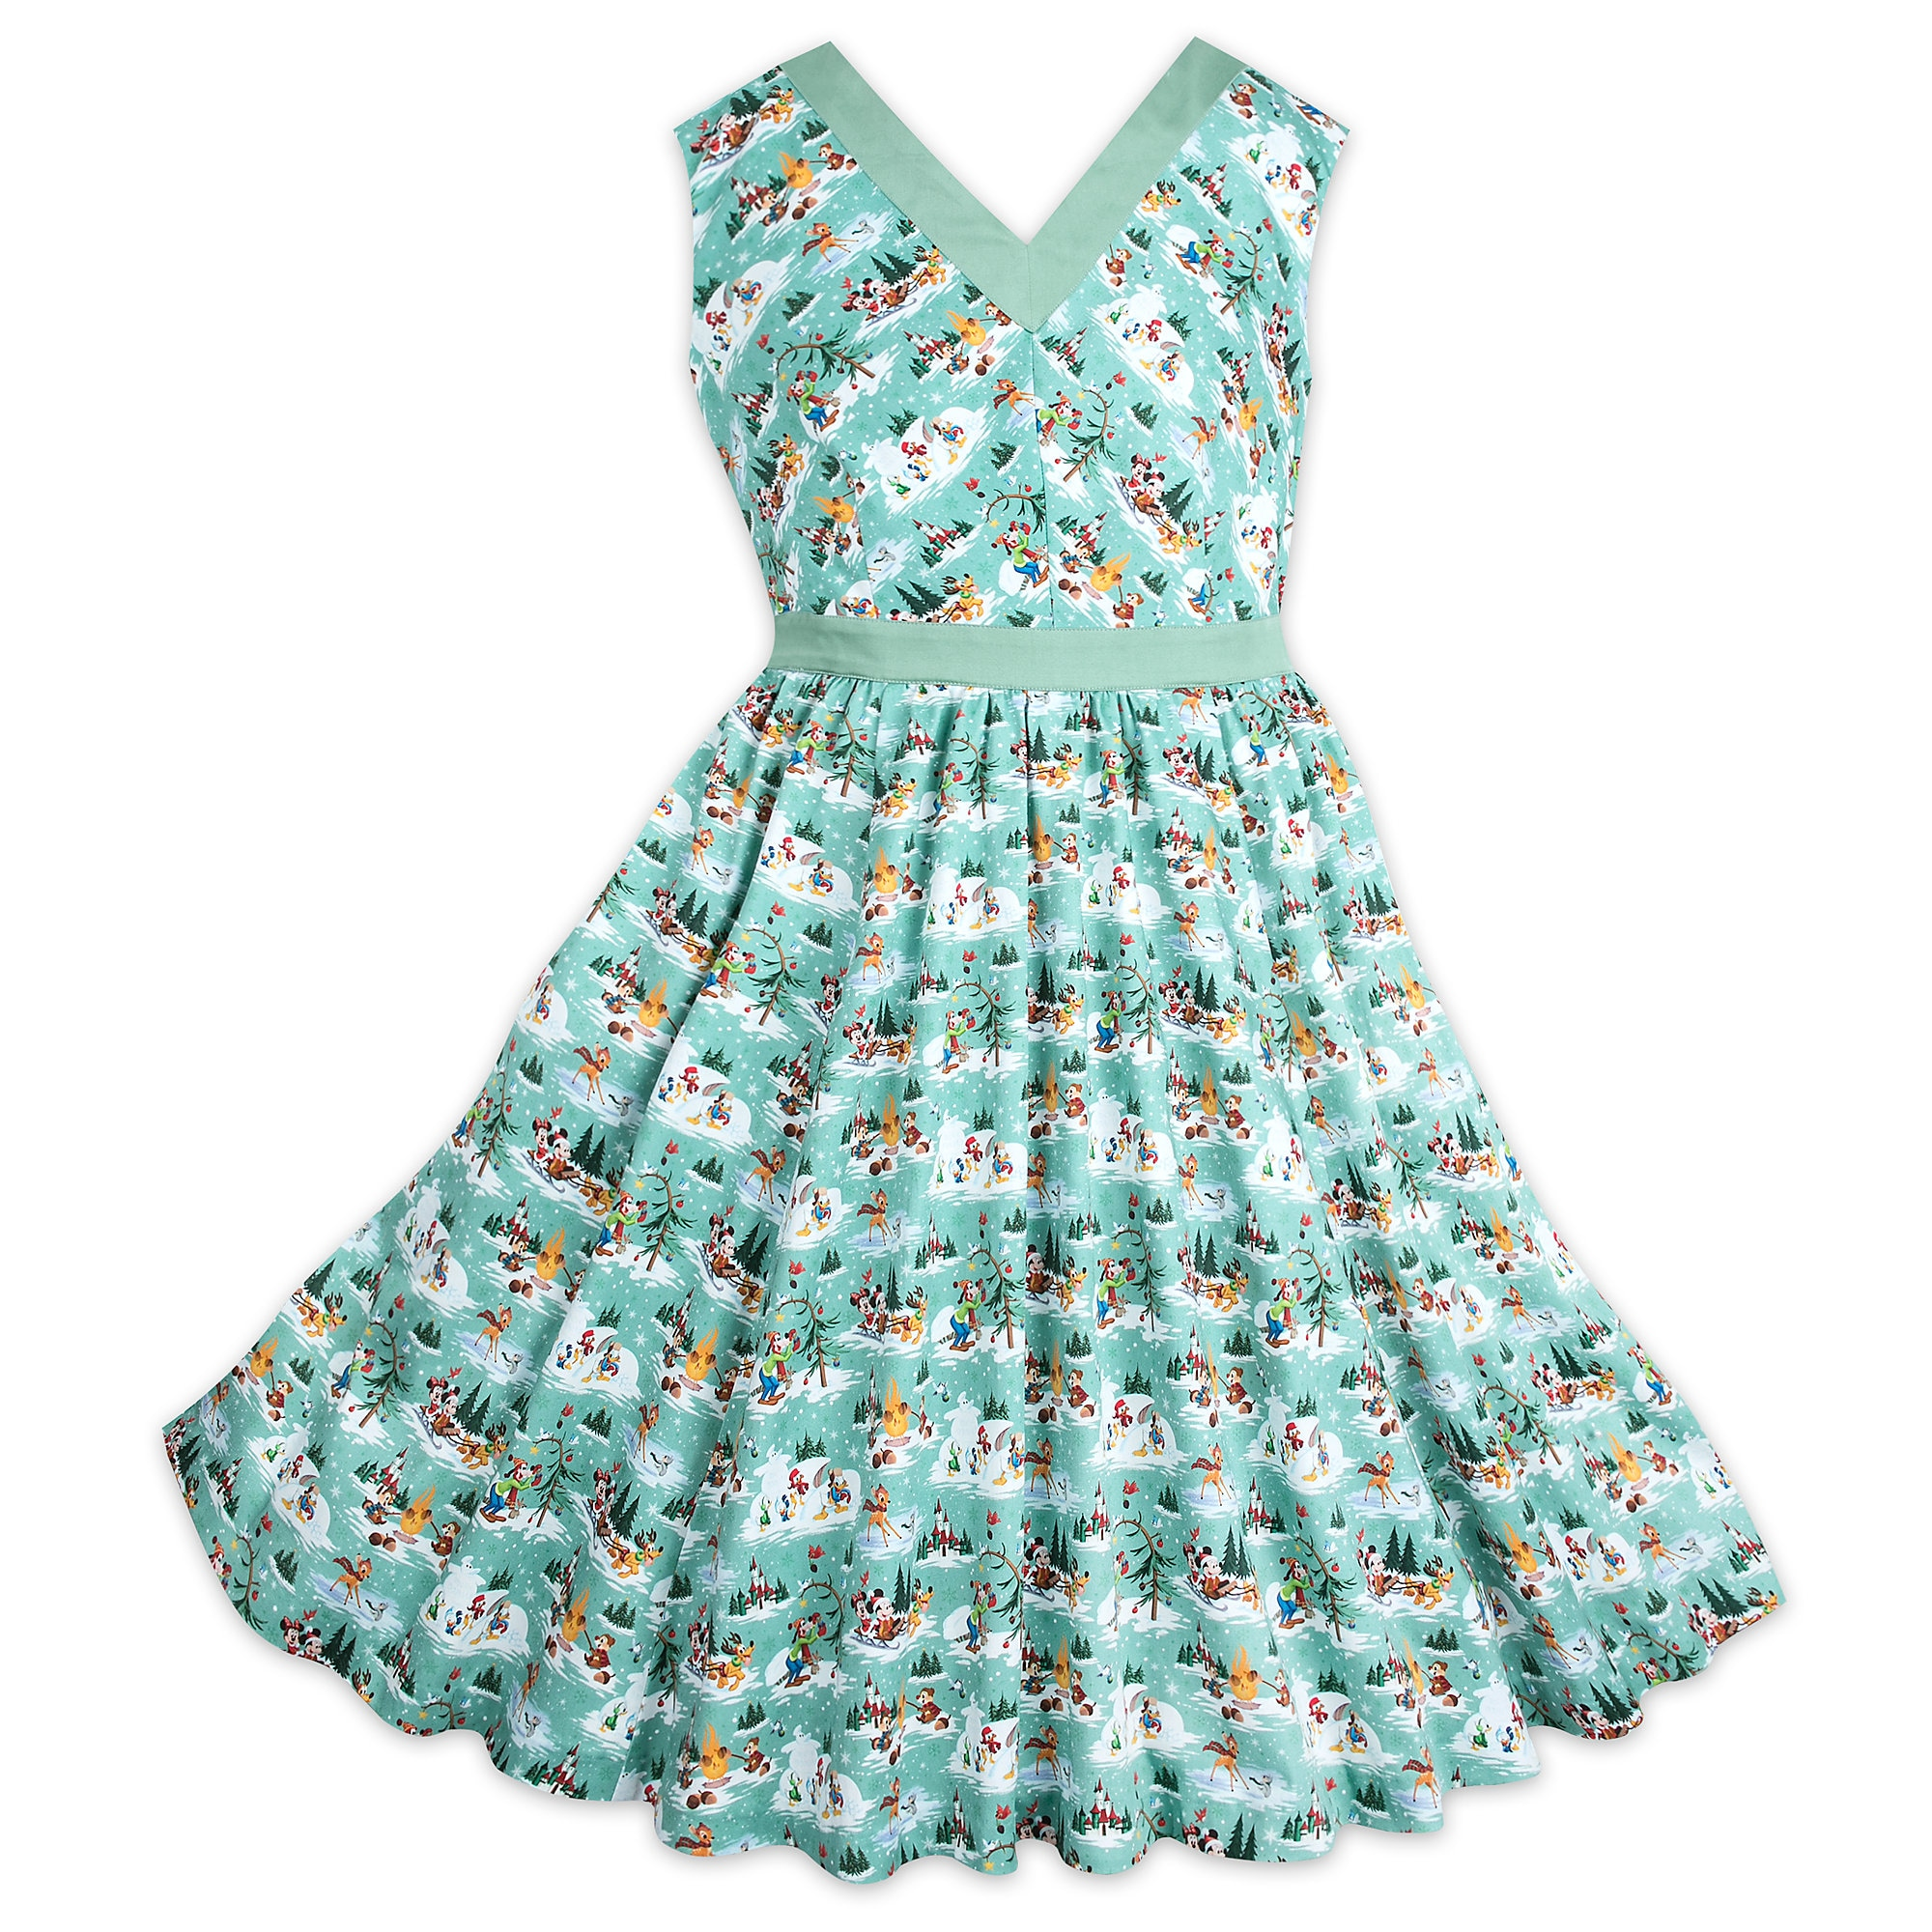 Mickey & Friends Holiday Dress - Women